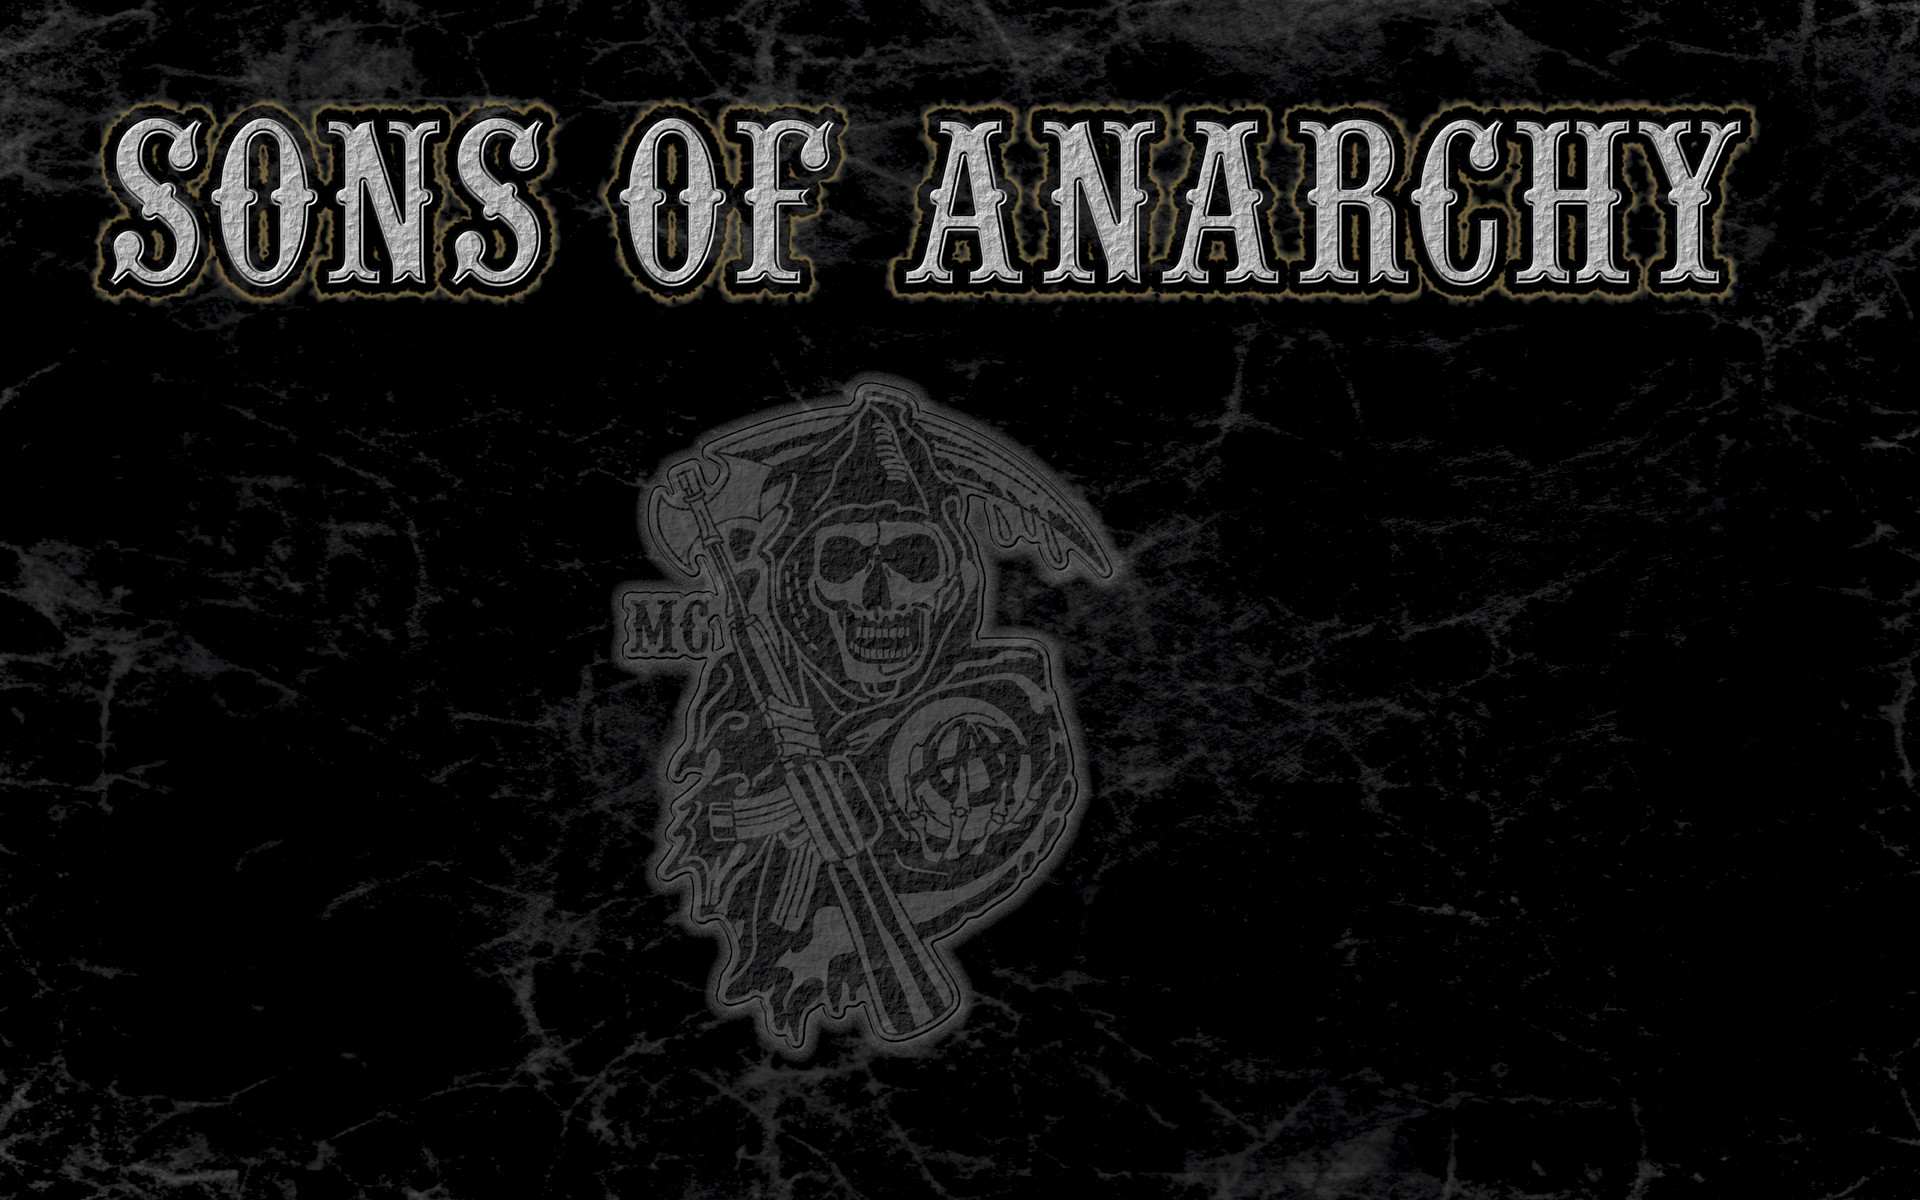 Sons of anarchy wallpapers 77 background pictures - Soa wallpaper iphone ...